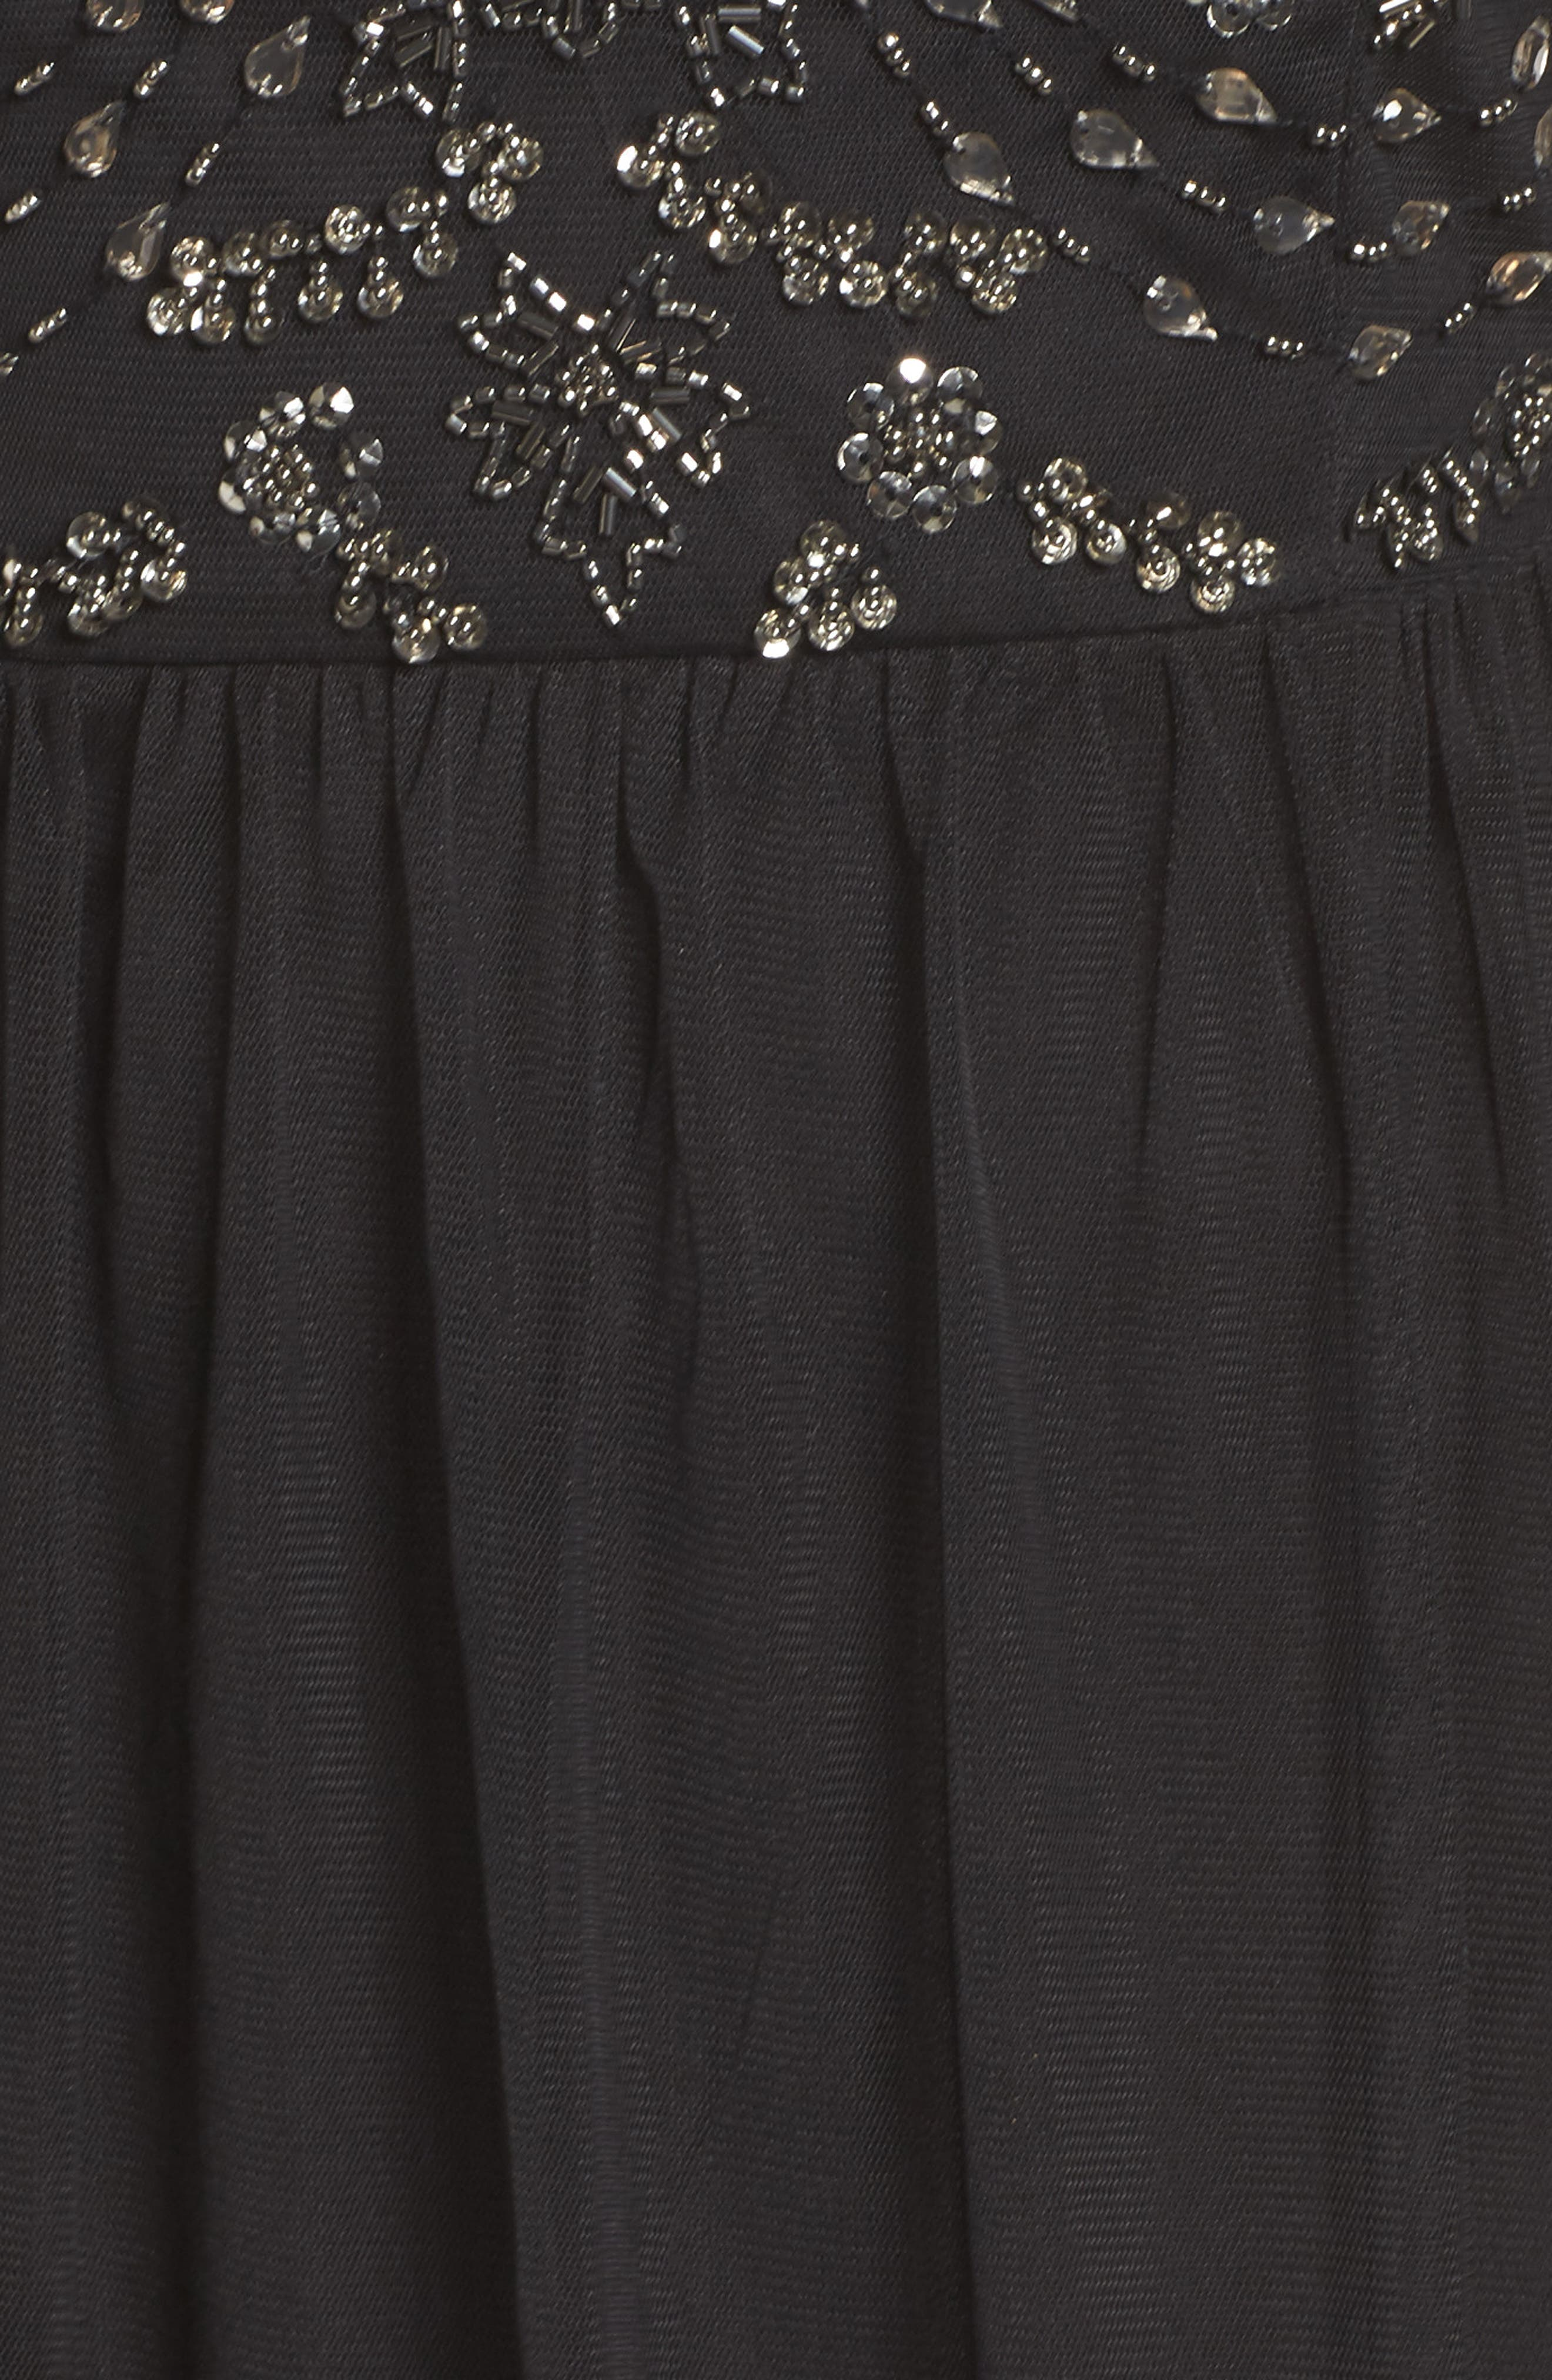 Beaded Bodice Tulle Gown,                             Alternate thumbnail 5, color,                             Black